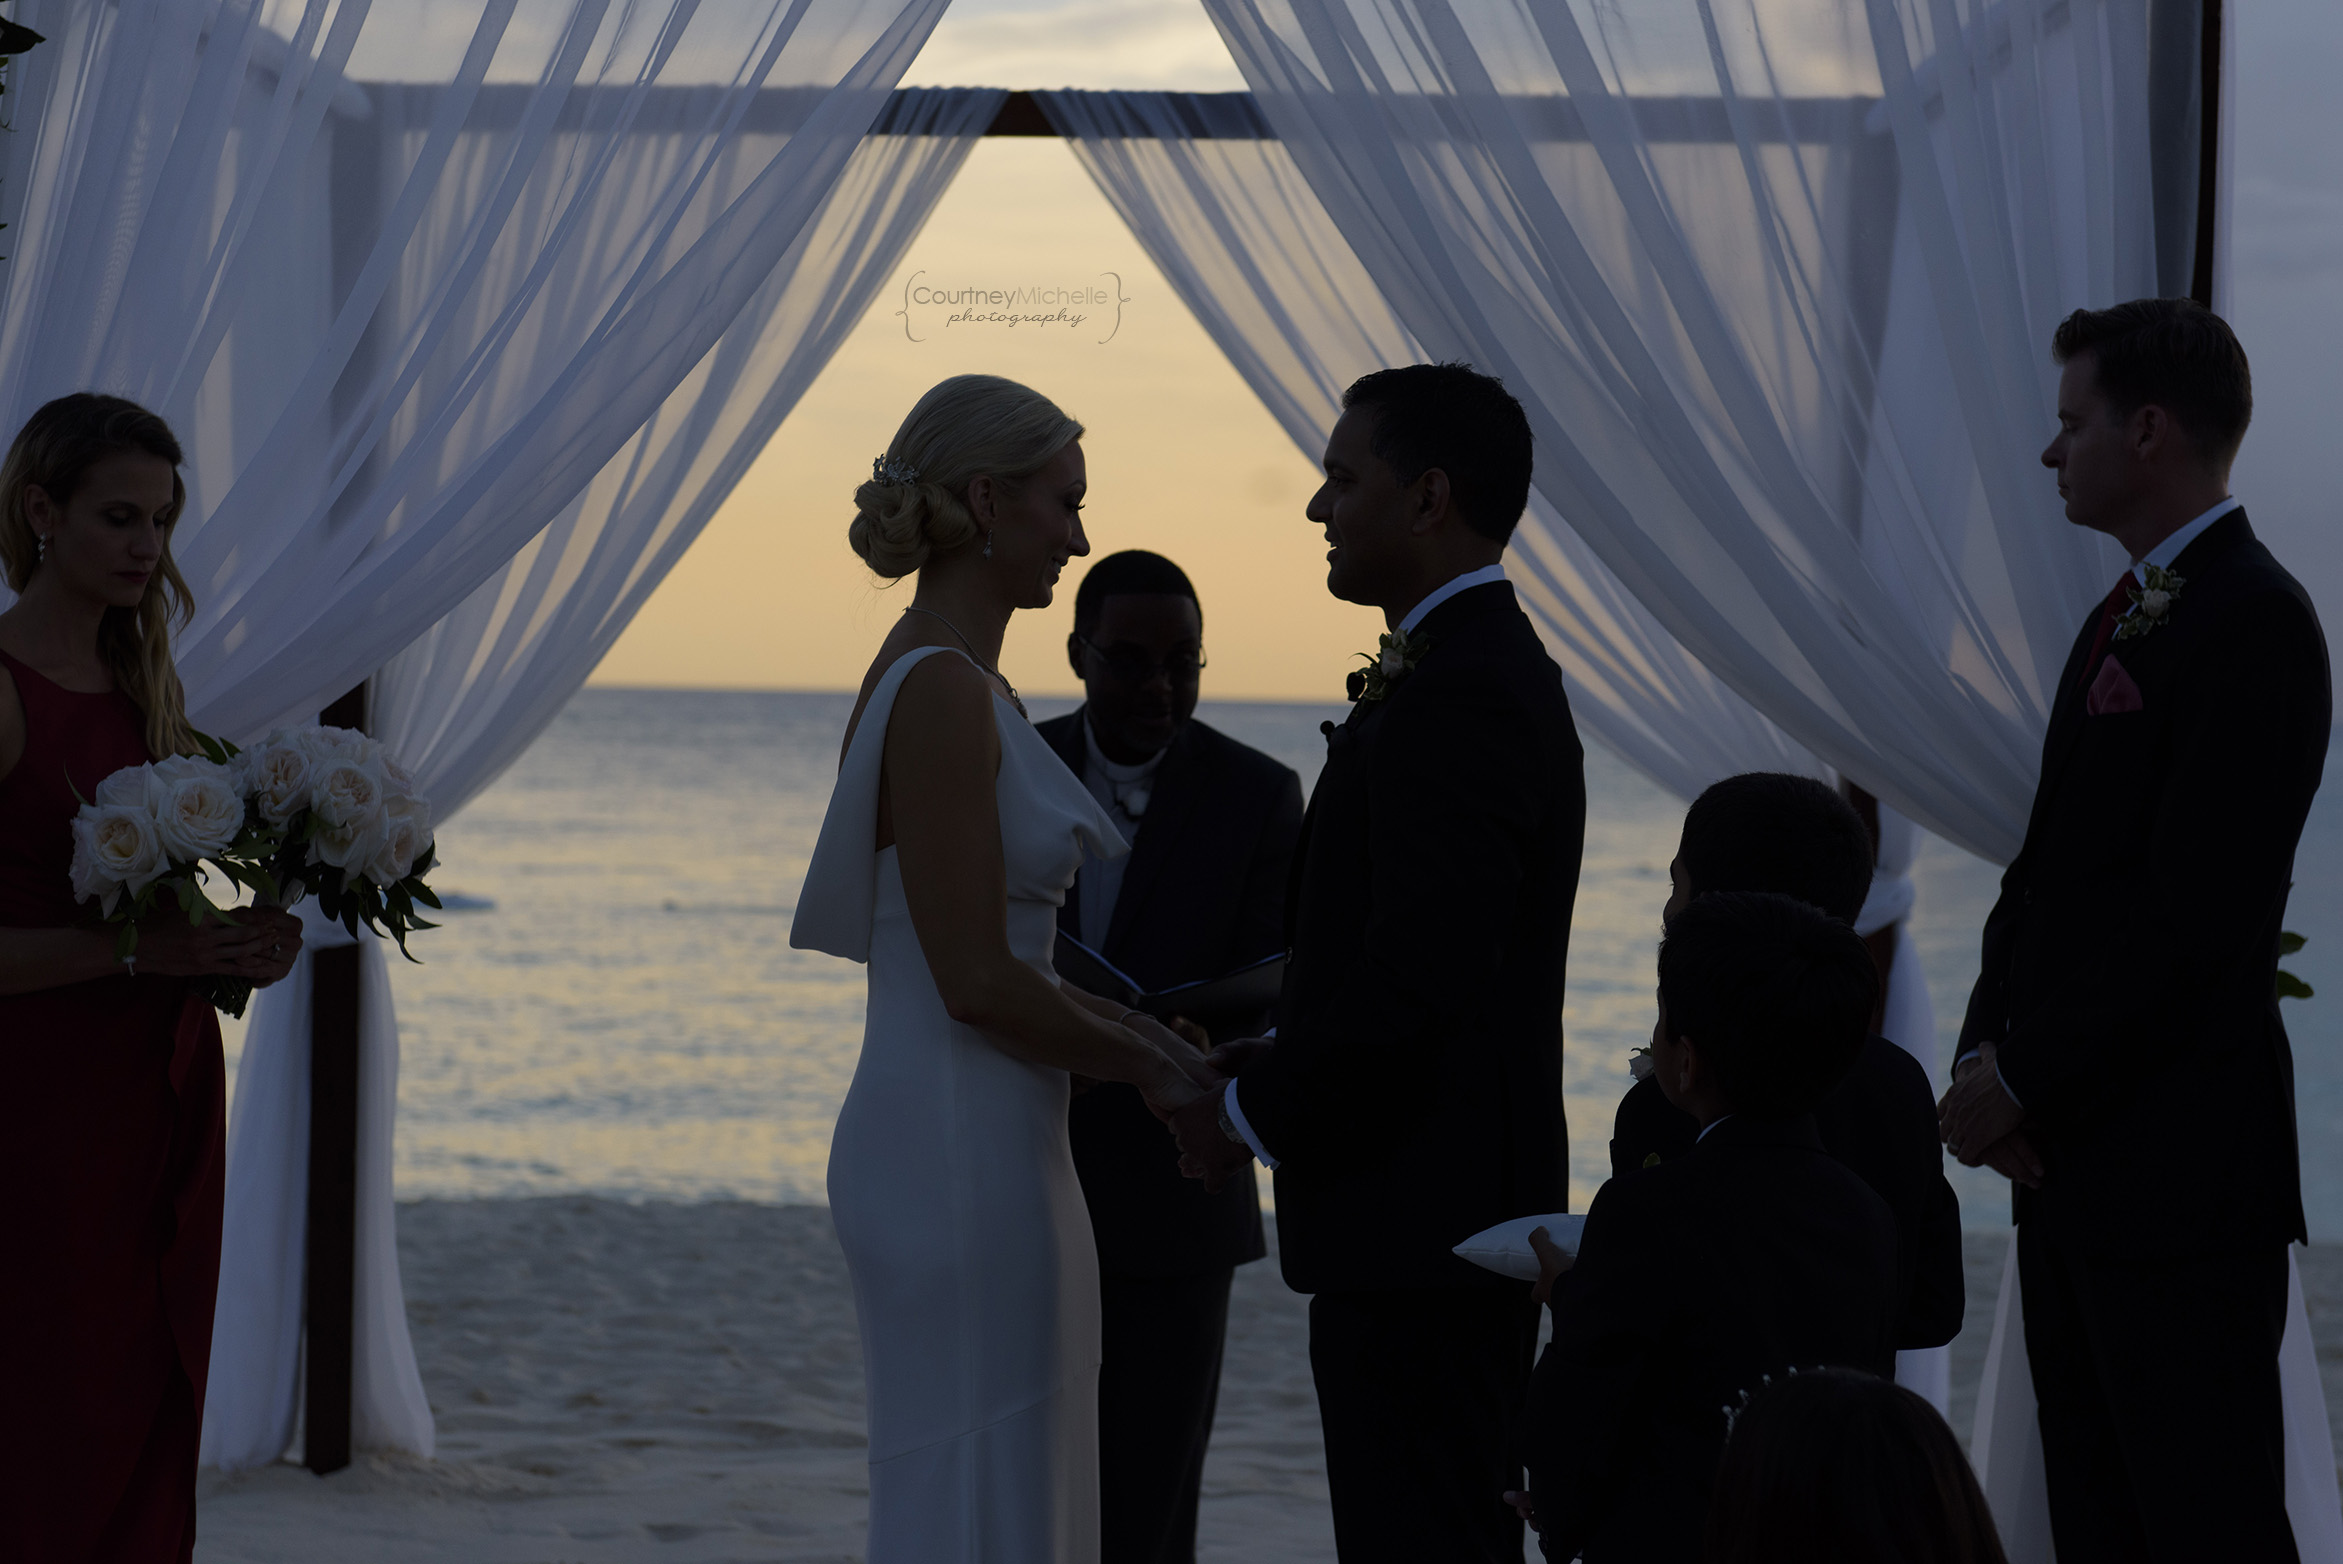 bride-and-groom-silhouette-grand-cayman-beach-wedding-photography-by-courtney-laper©CopyrightCMP-LeaAnneRaj-7741.jpg